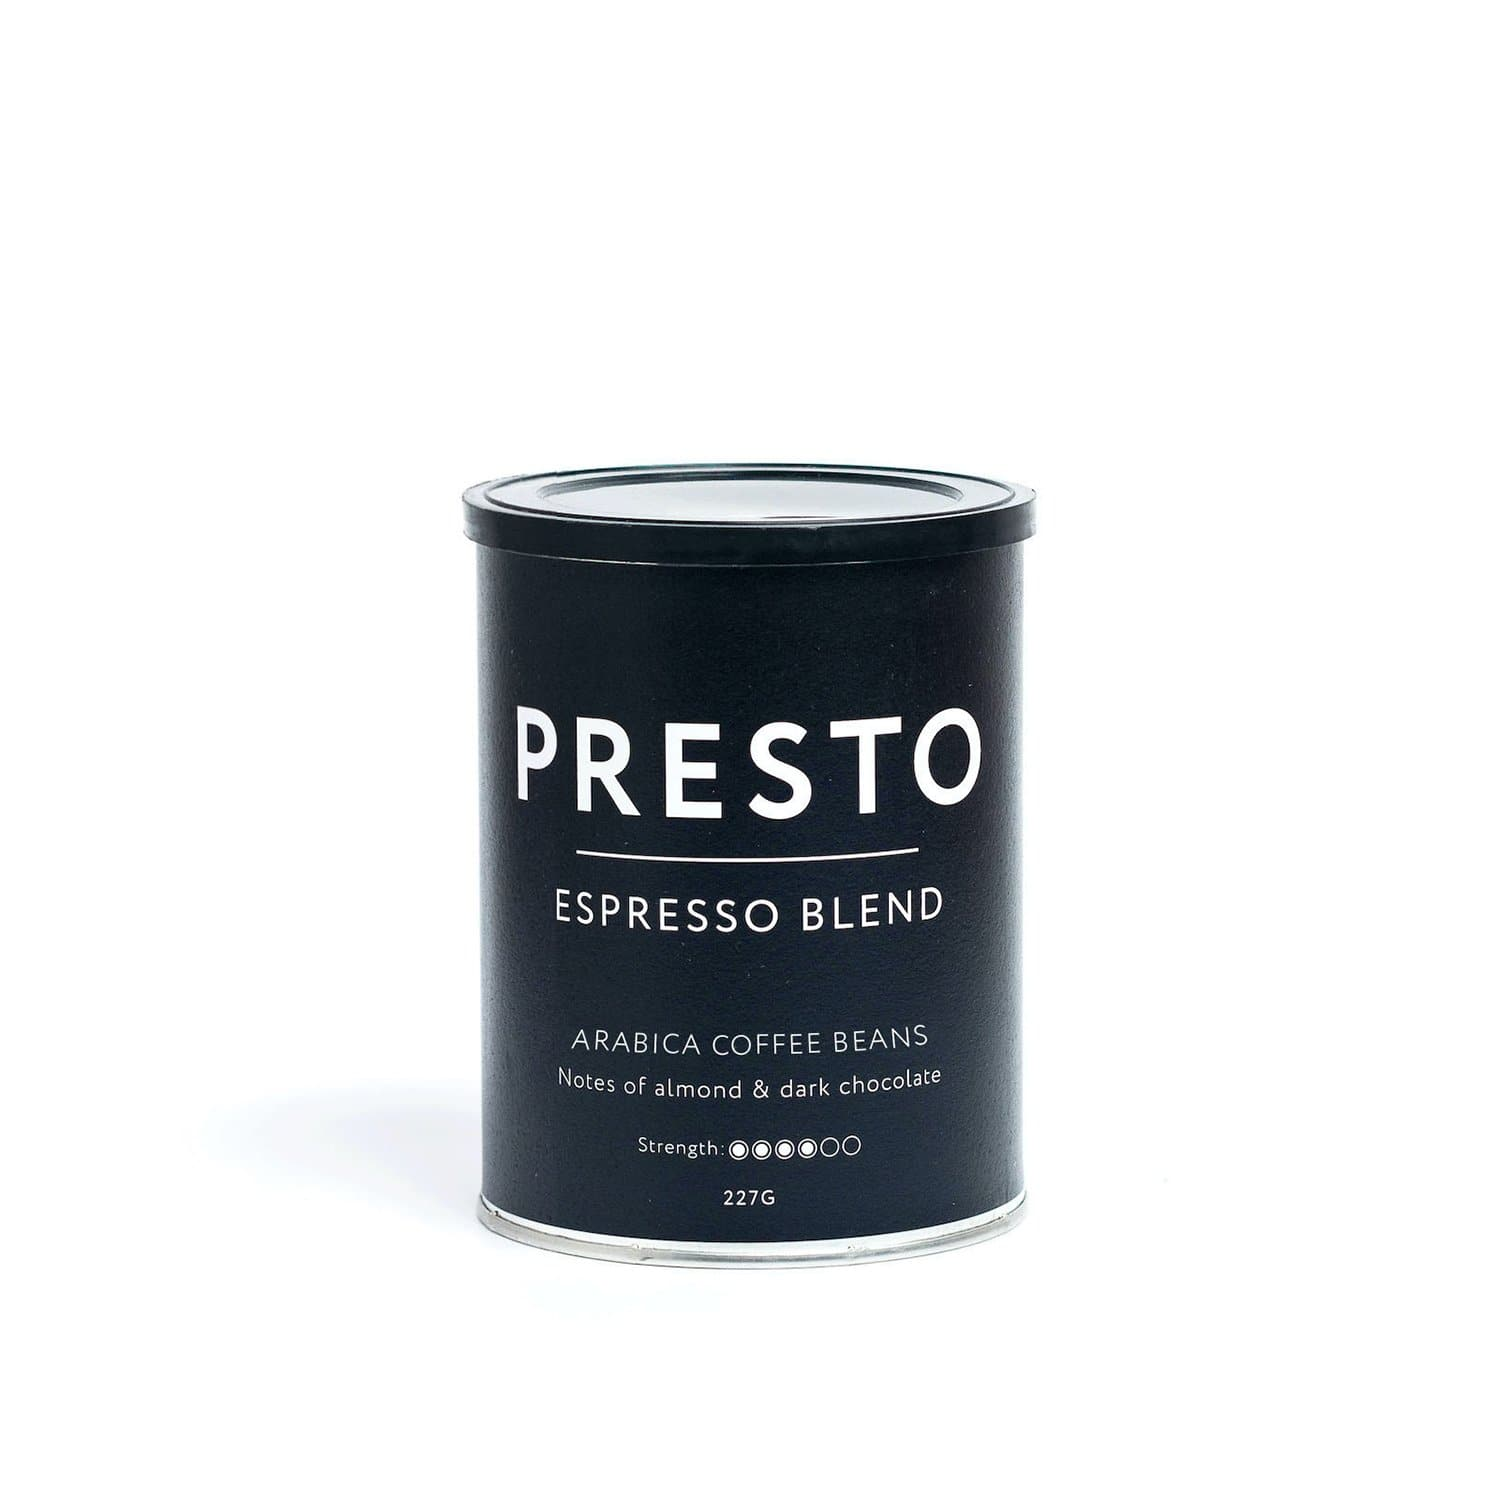 Presto Espresso Blend - Refillable Coffee Bean Tin - 227g - Timeout